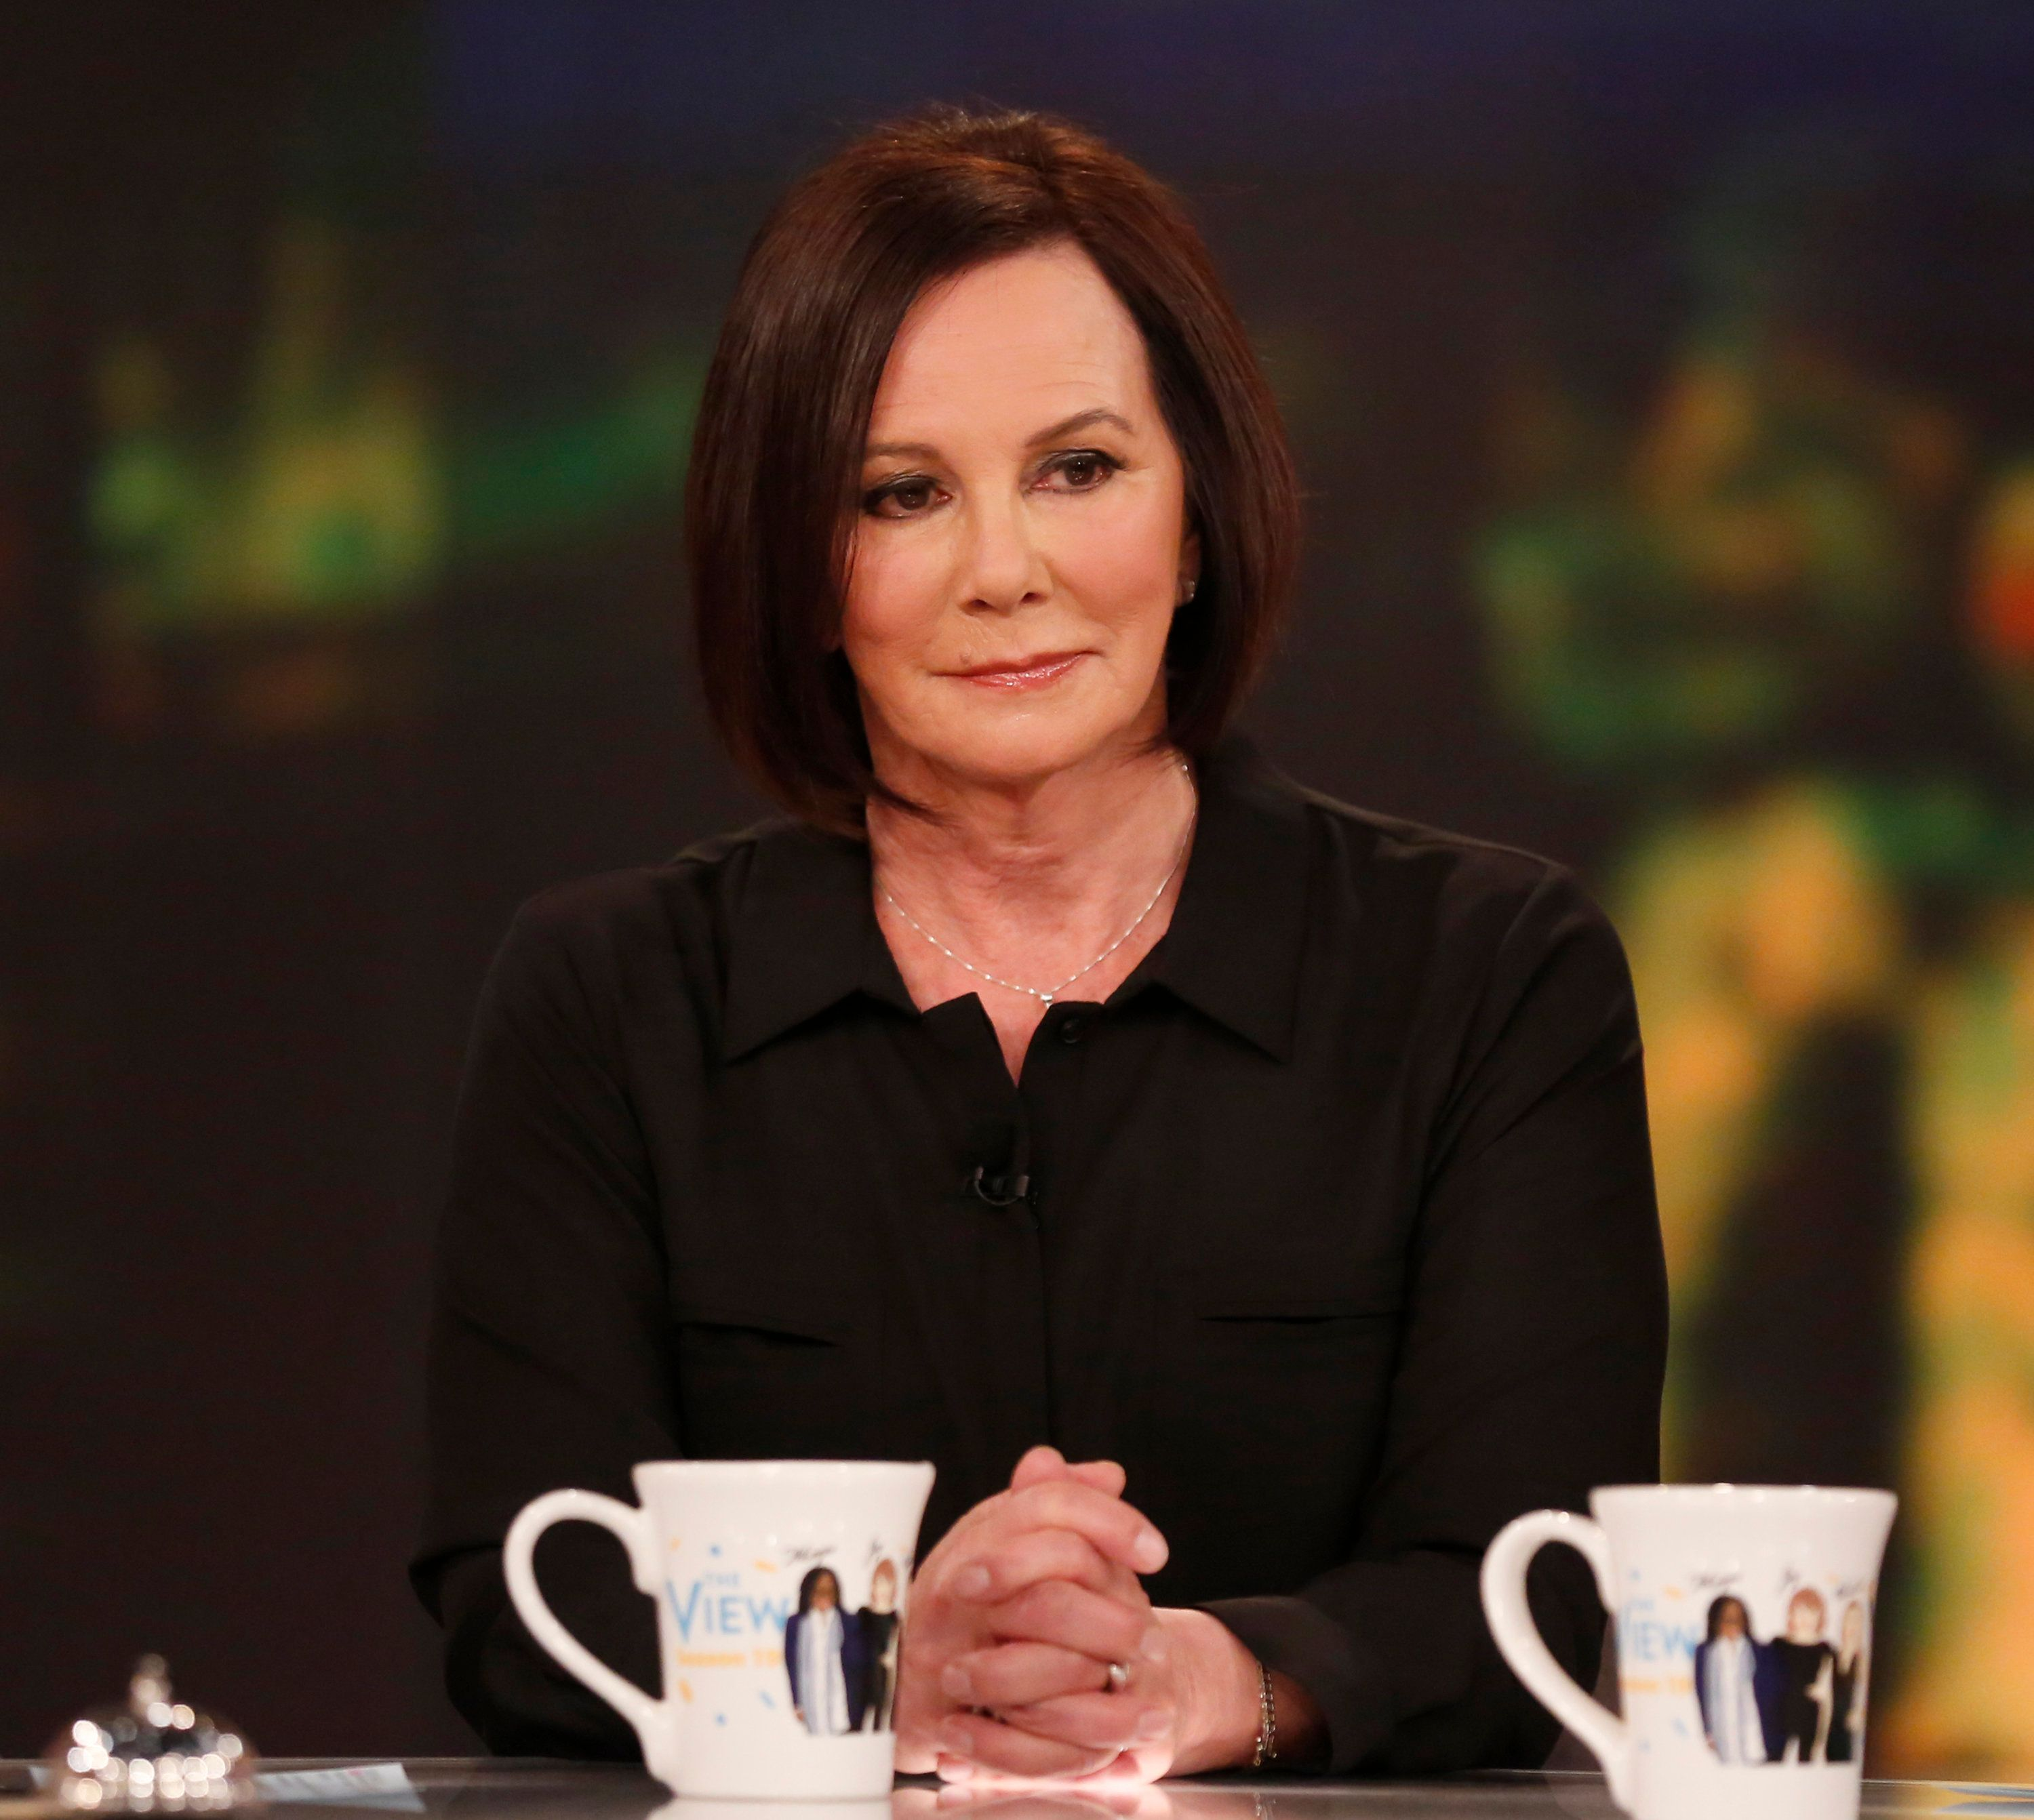 THE VIEW - Marcia Clark is the guest today, Wednesday, February 3, 2016 on ABC's 'The View.'   'THE VIEW'  airs 11:00 a.m. - 12:00 noon, ET on the ABC Television Network.   (Photo by Heidi Gutman/ABC via Getty Images) MARCIA CLARK